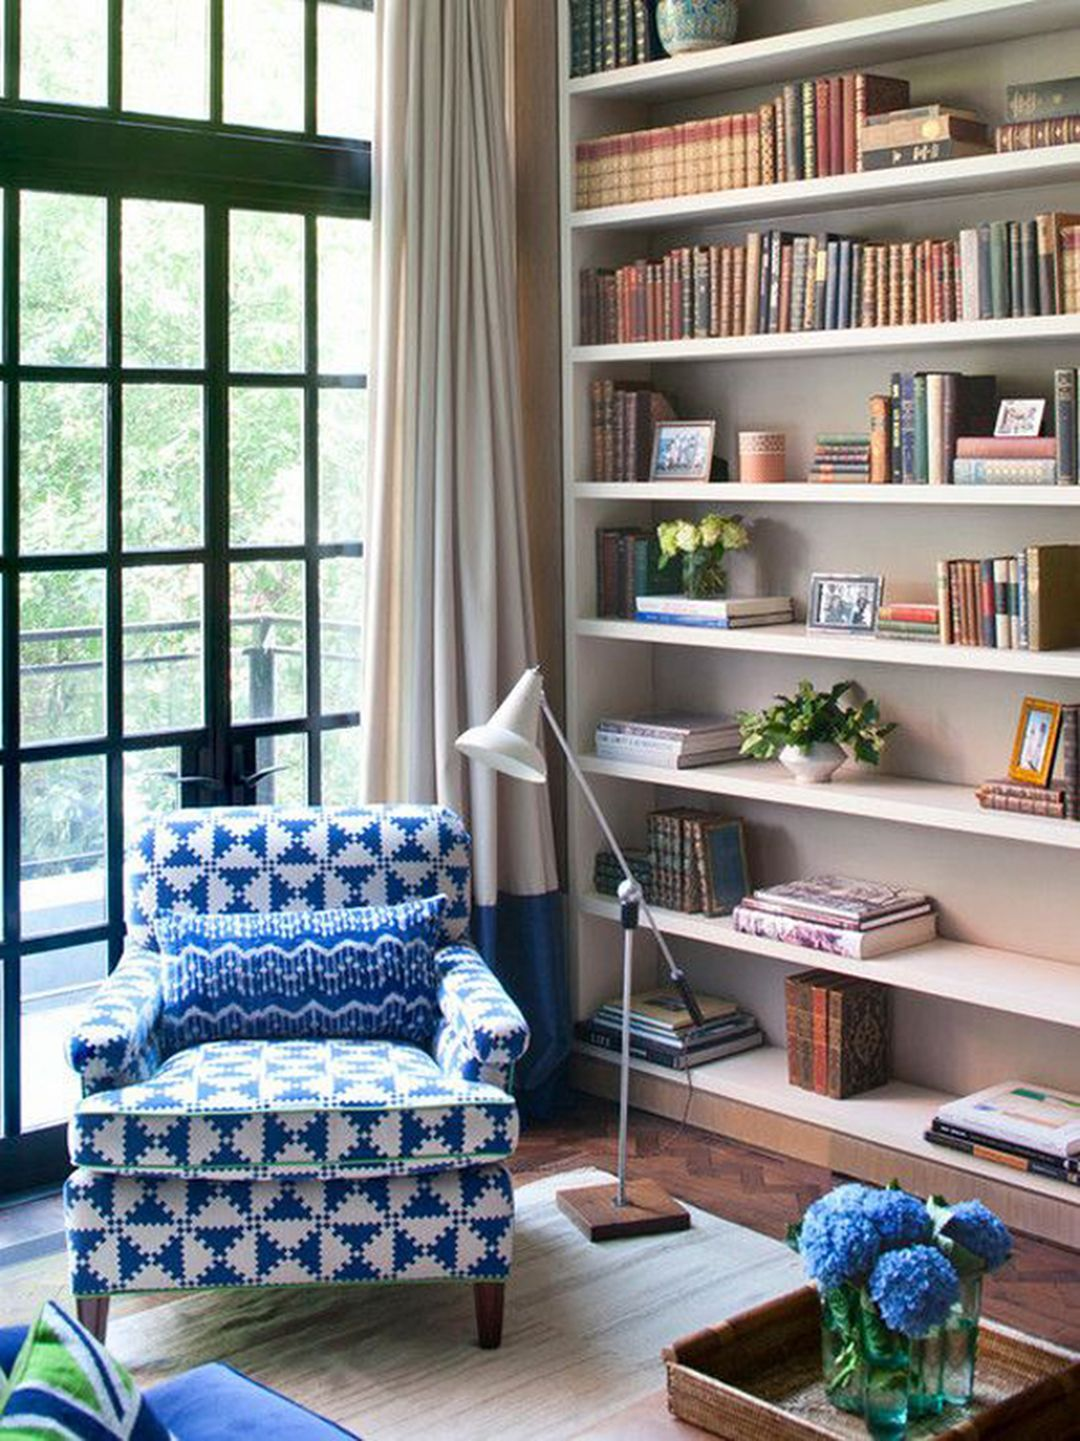 Top 20+ Small Home Library Design Ideas For Inspiration | Library ...